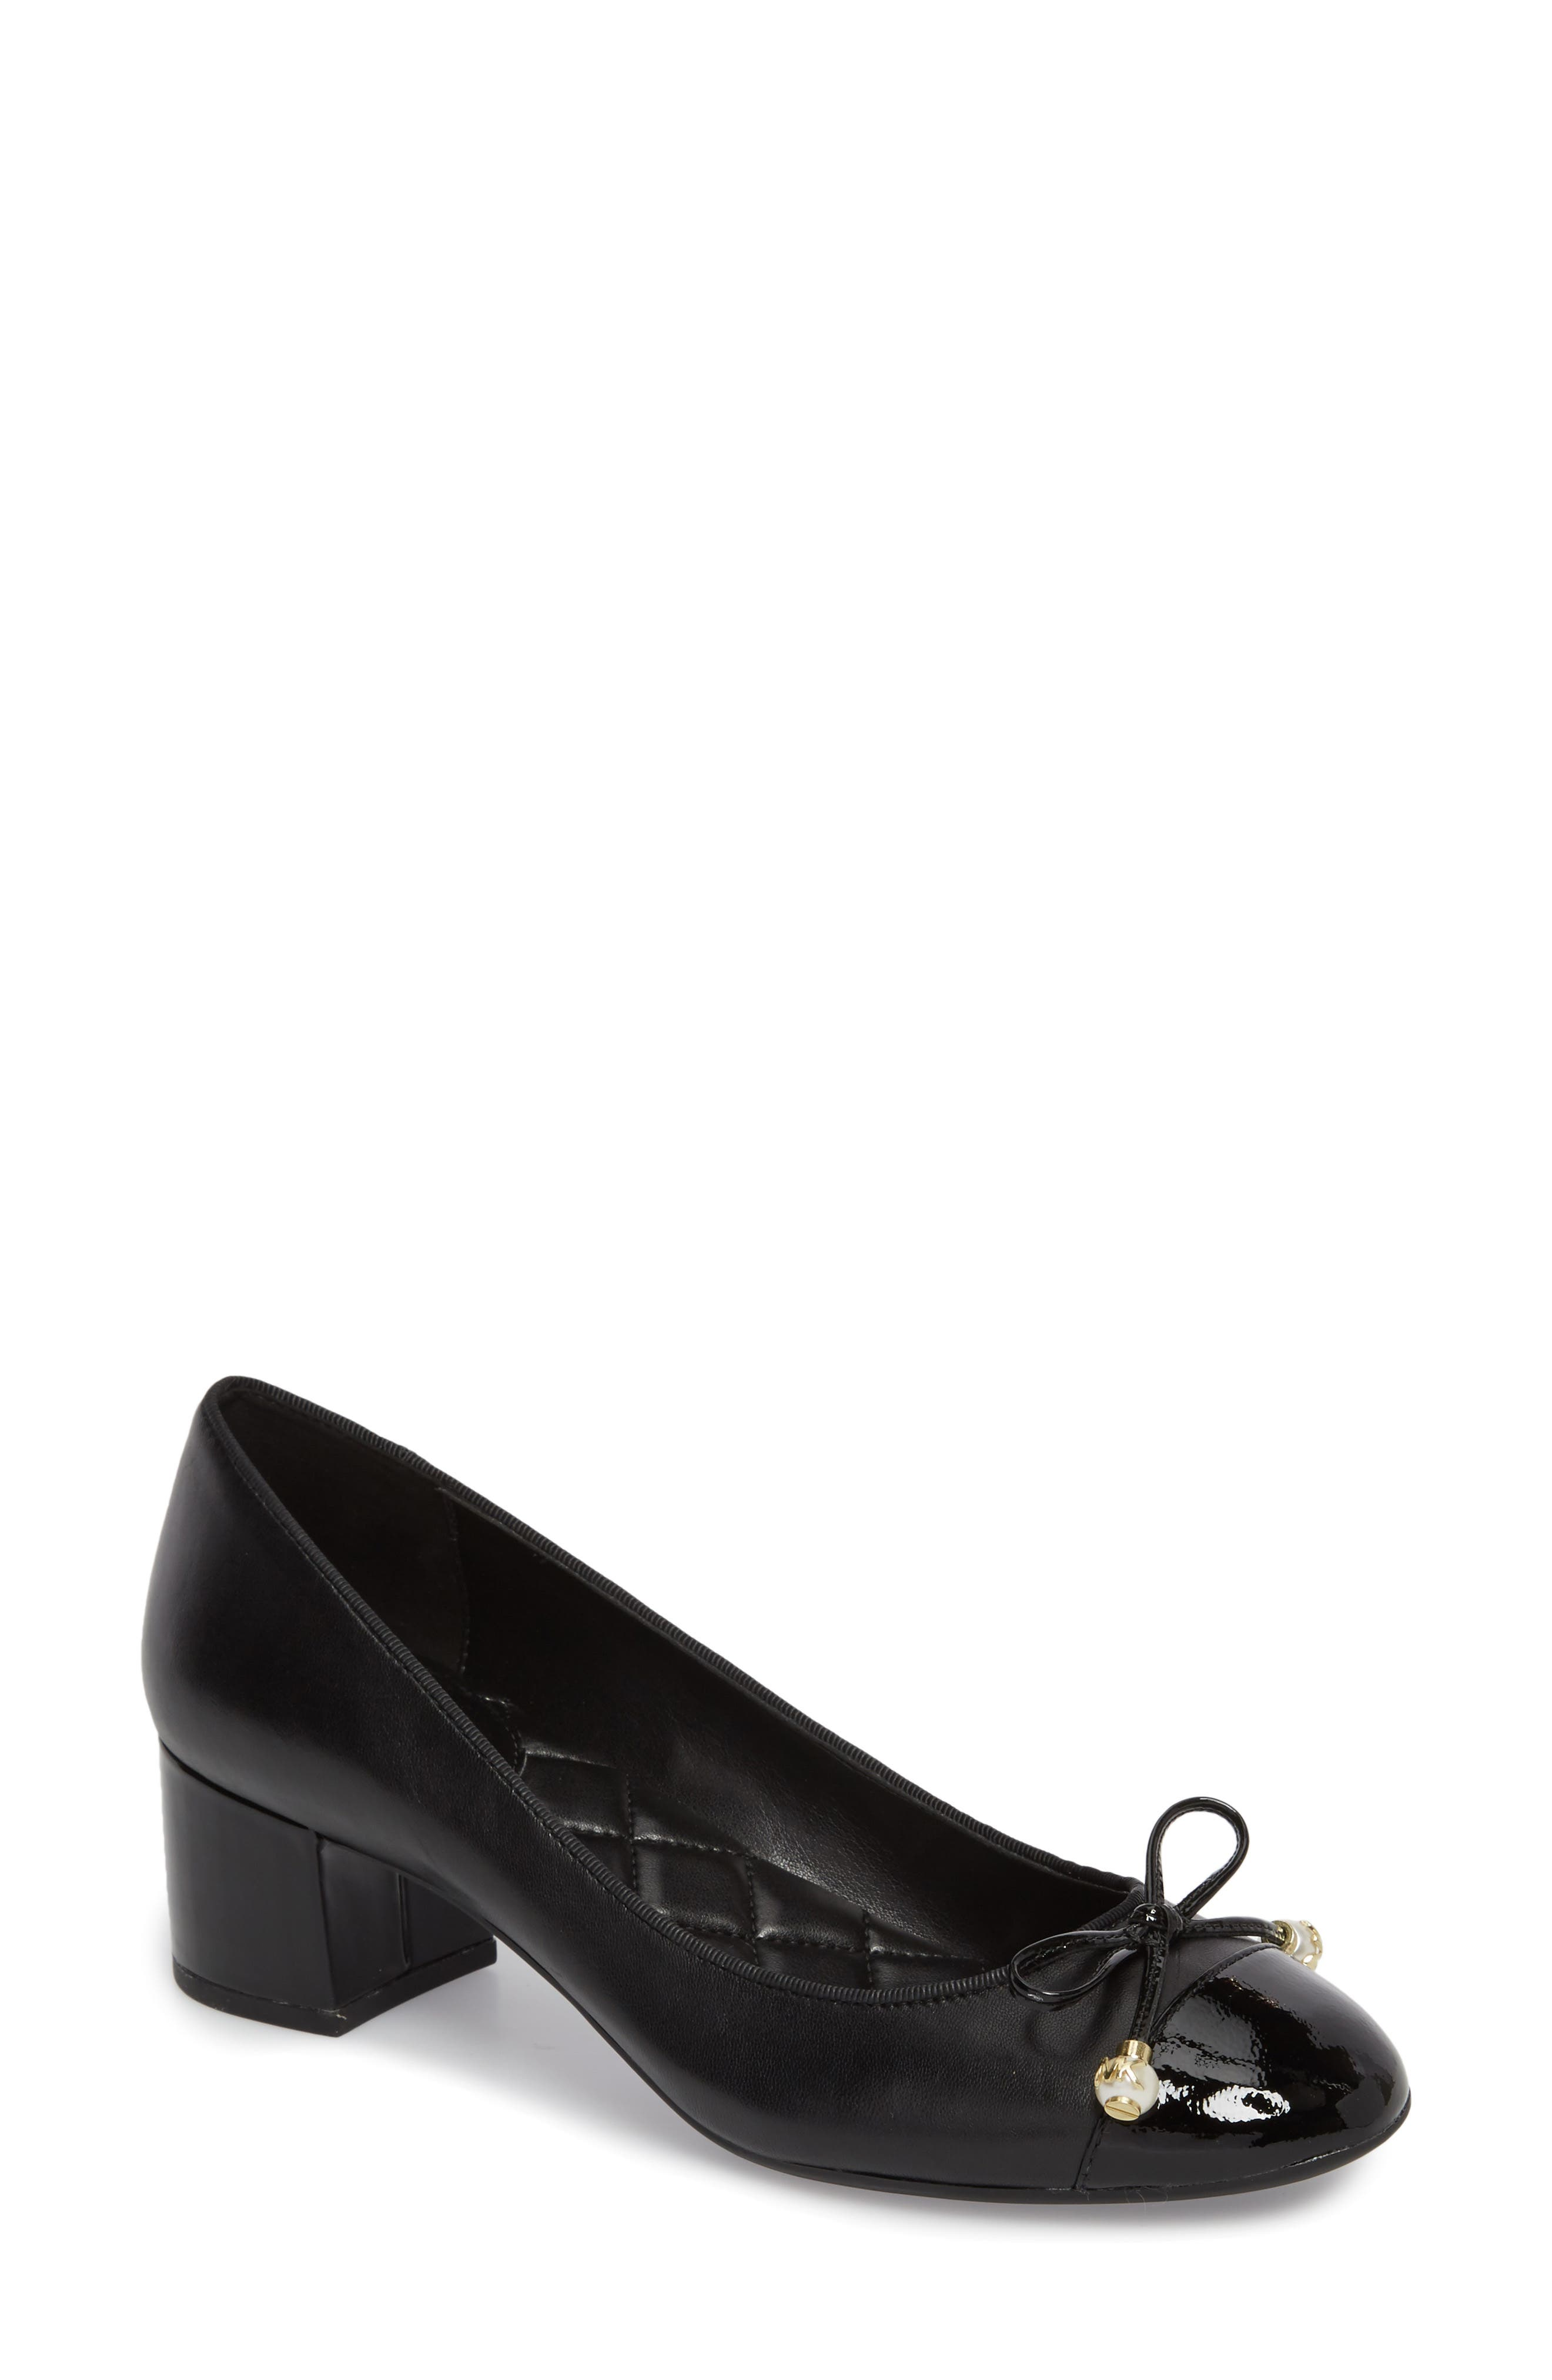 Gia Pump,                             Main thumbnail 1, color,                             Black Nappa Leather